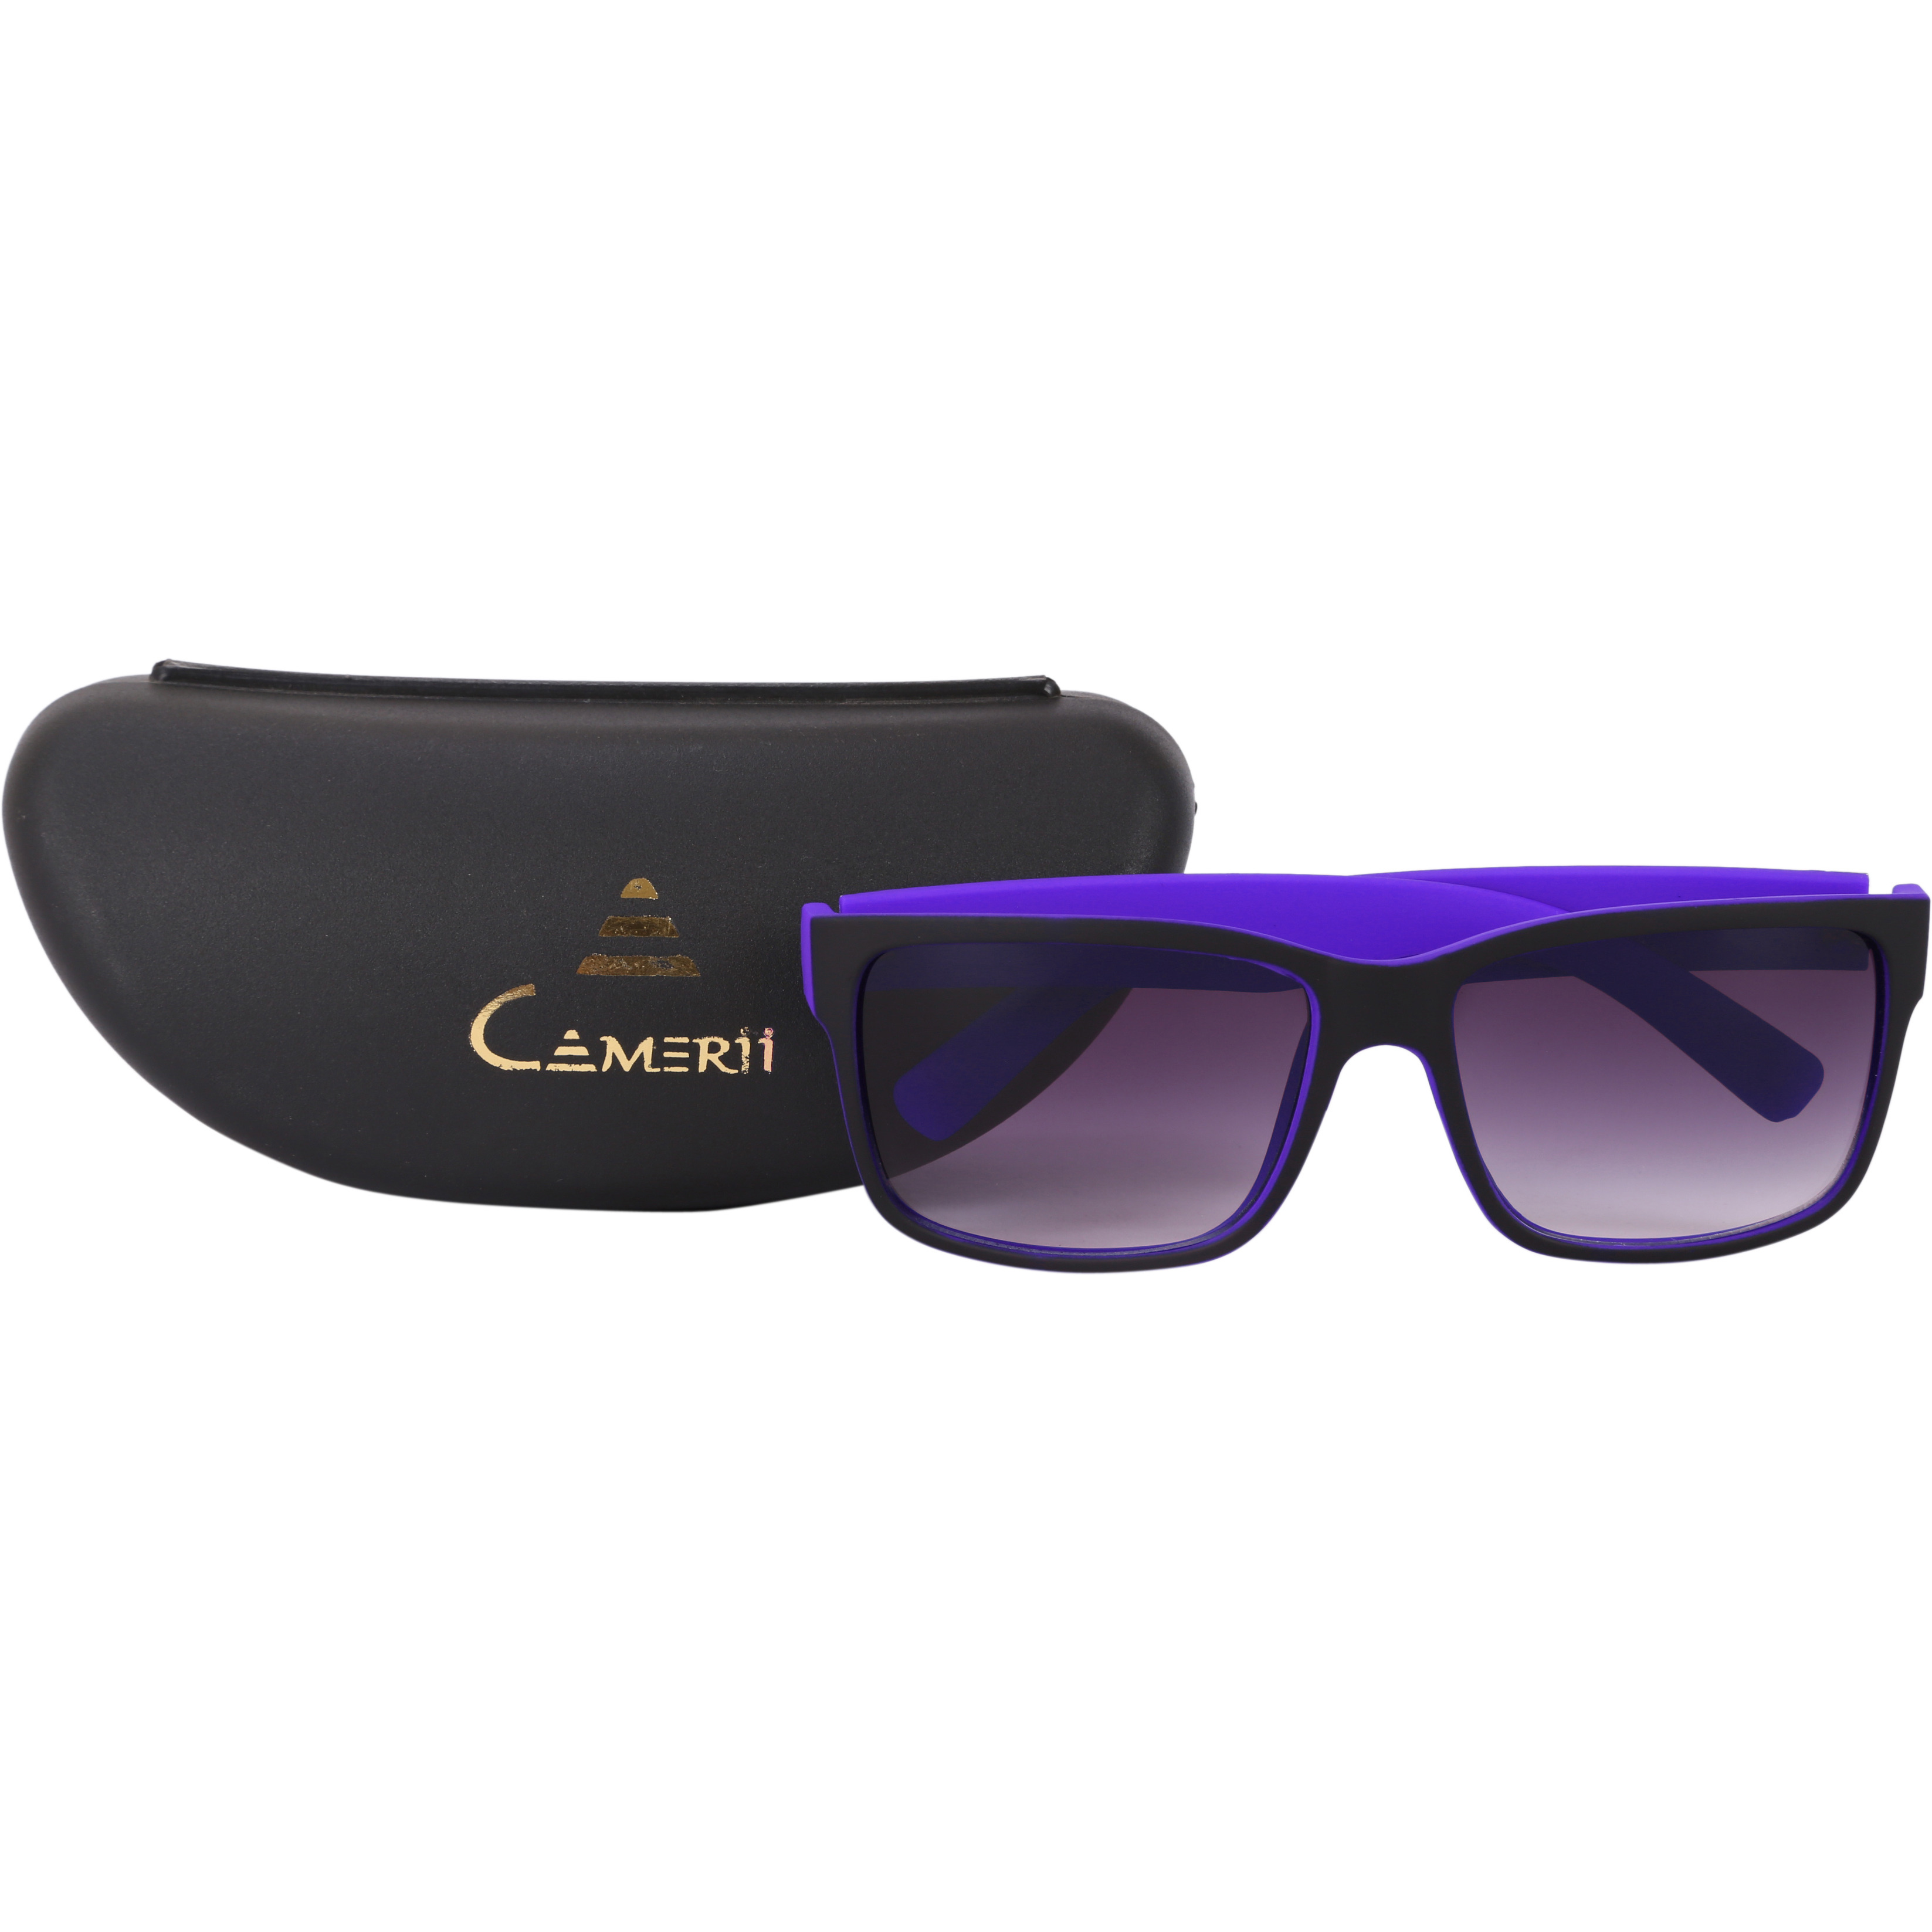 Camerii Metfinish Black  Wayfarer Sunglasses